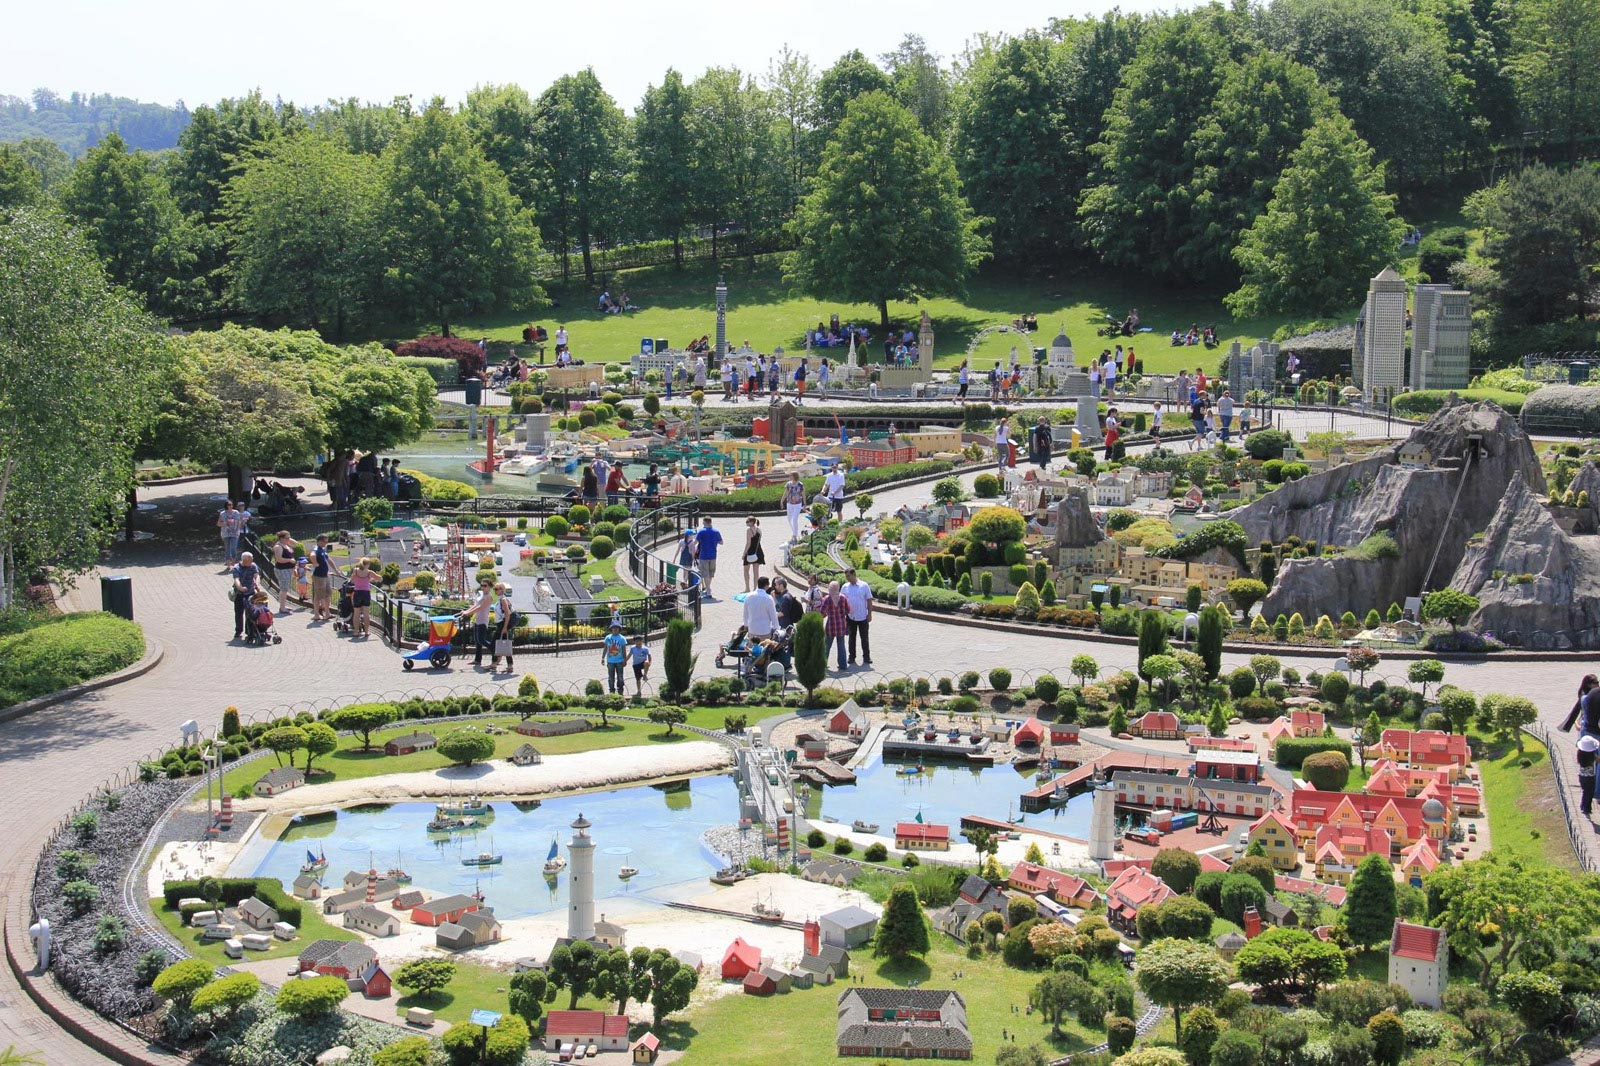 Legoland Windsor Resort. London. England